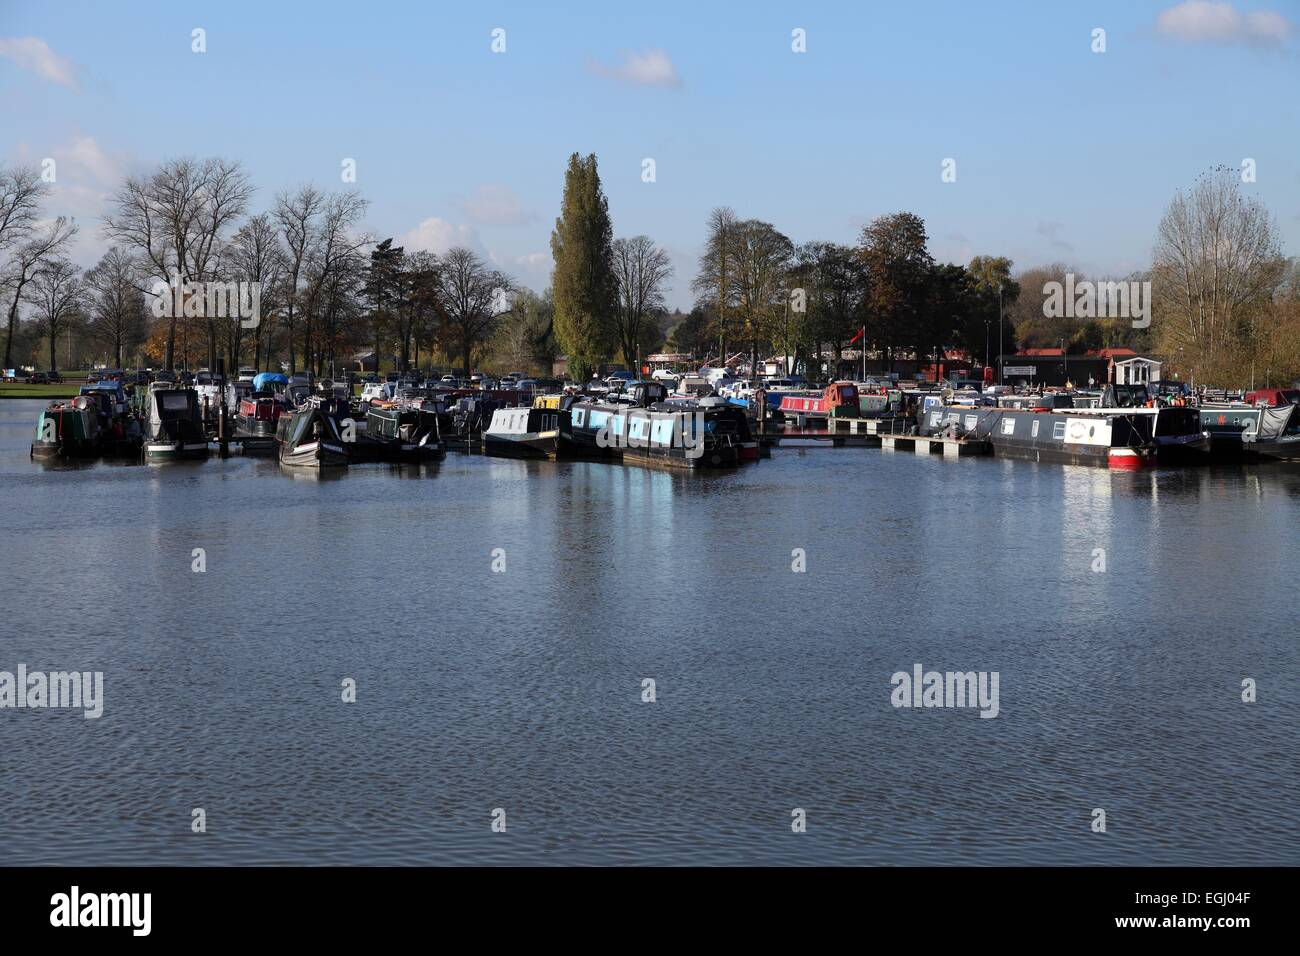 Billing Aquadrome a leisure park in Great Billing, Northampton, England. 235 acres of lakes and parkland - Stock Image